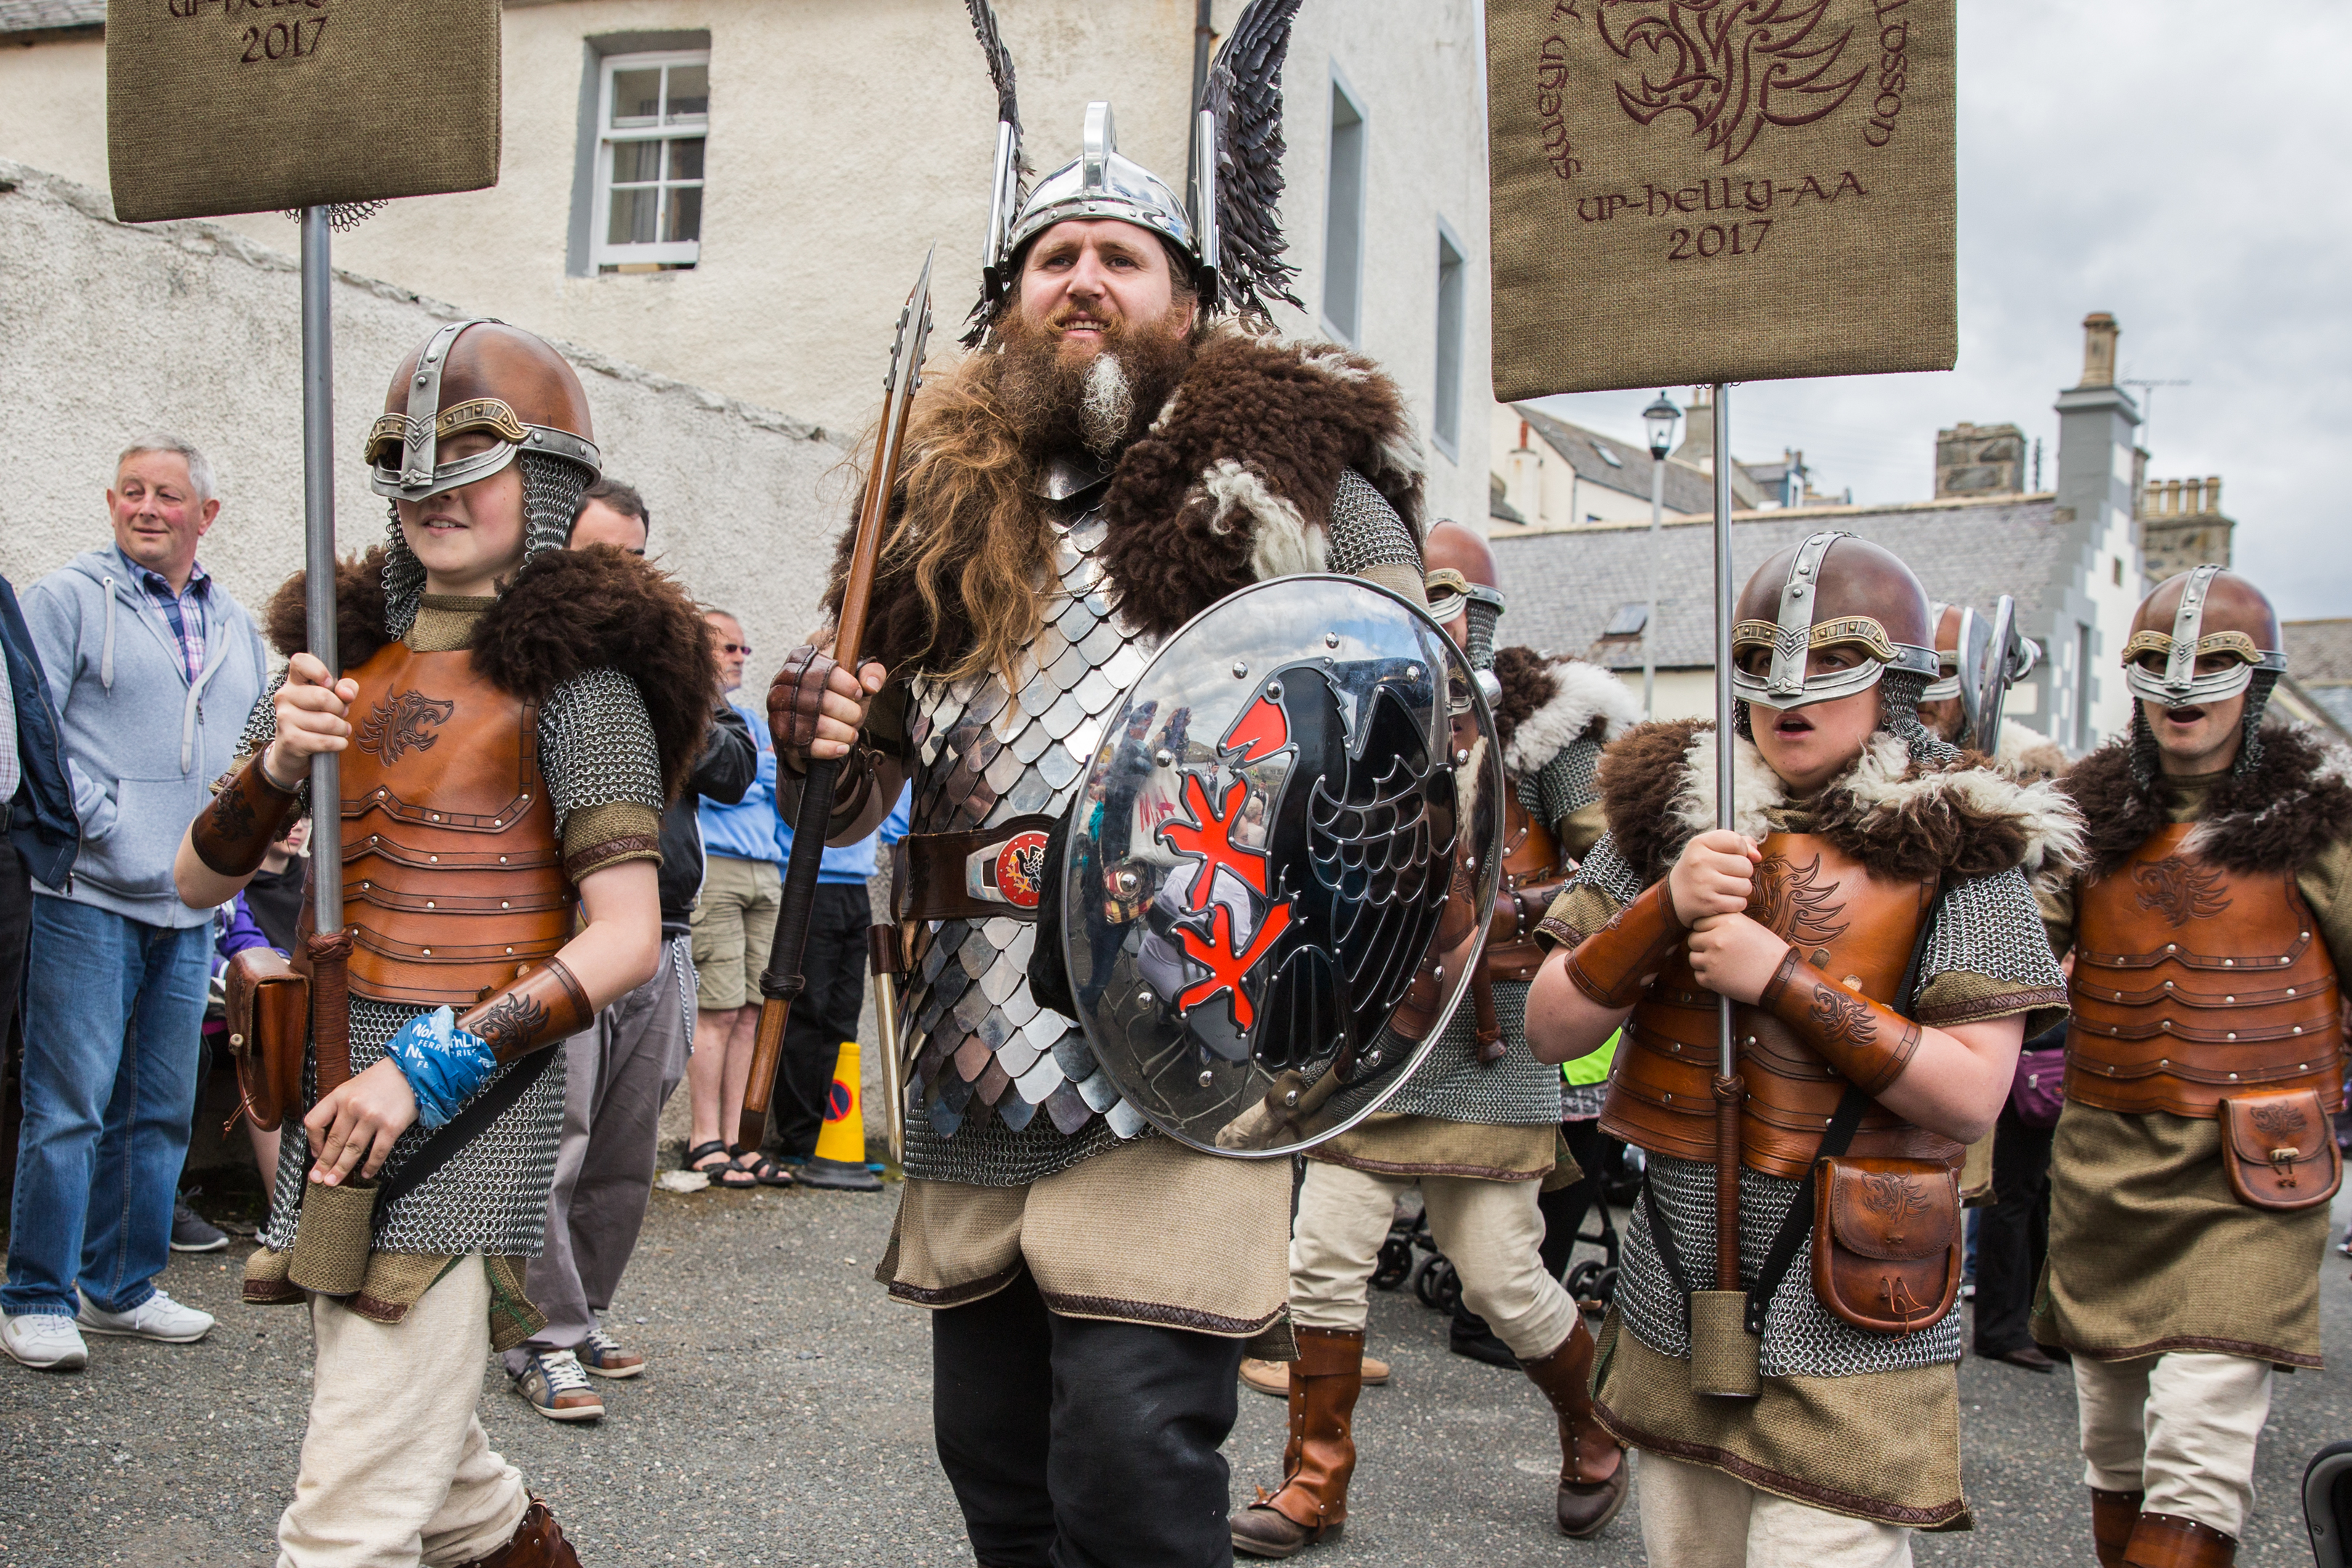 Vikings have previously visited the festival.